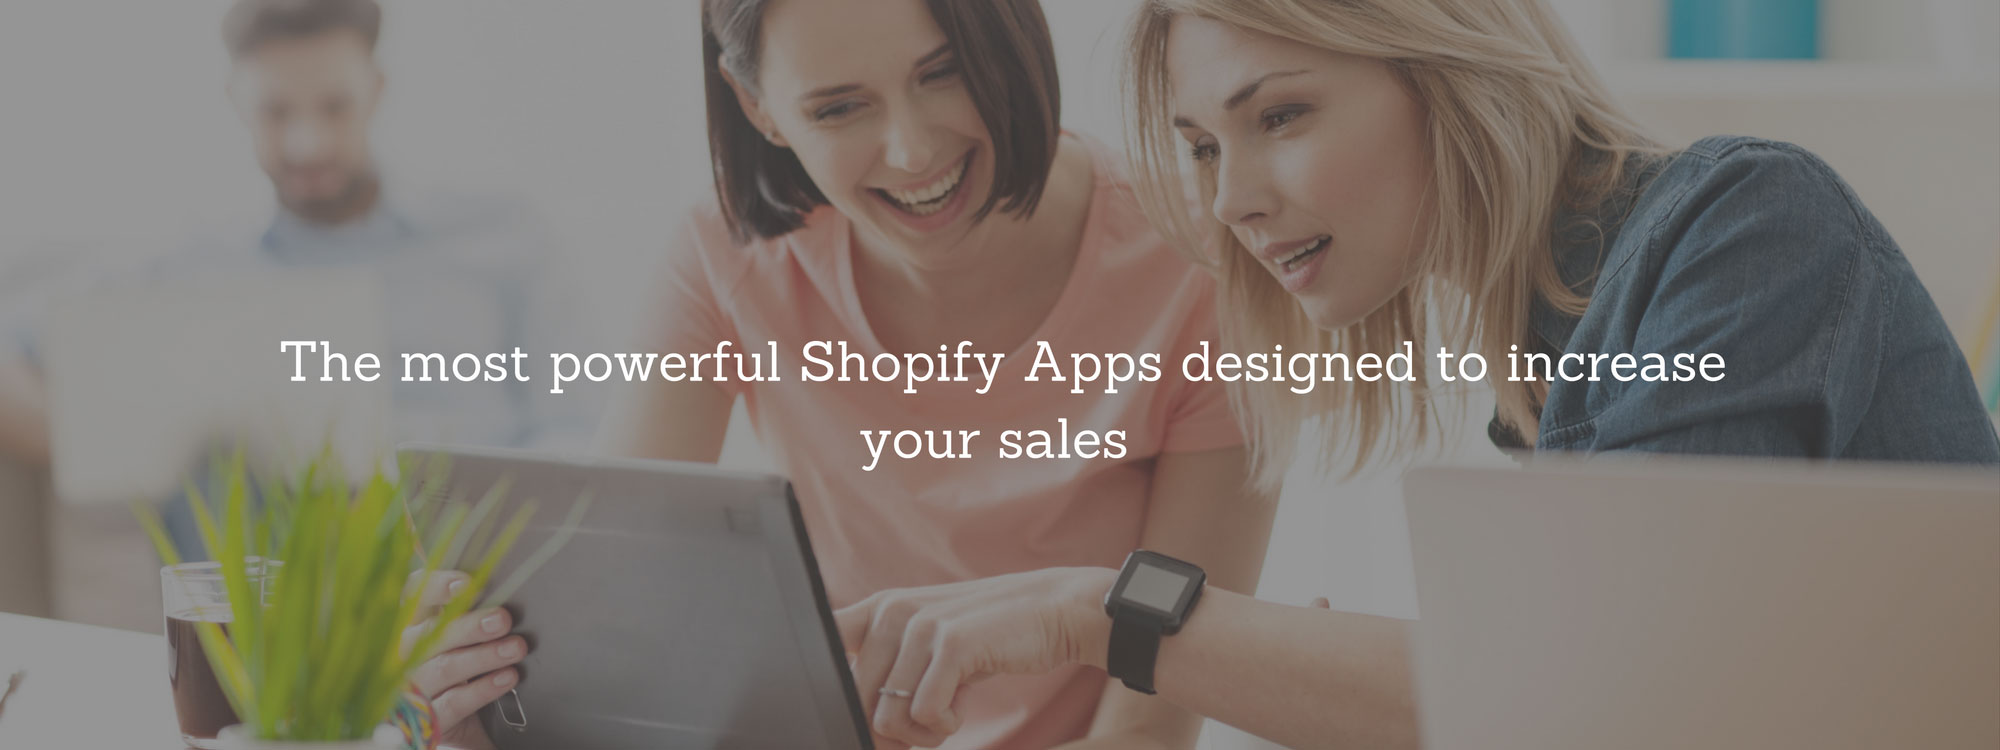 Zination is the most powerfull Shopify App